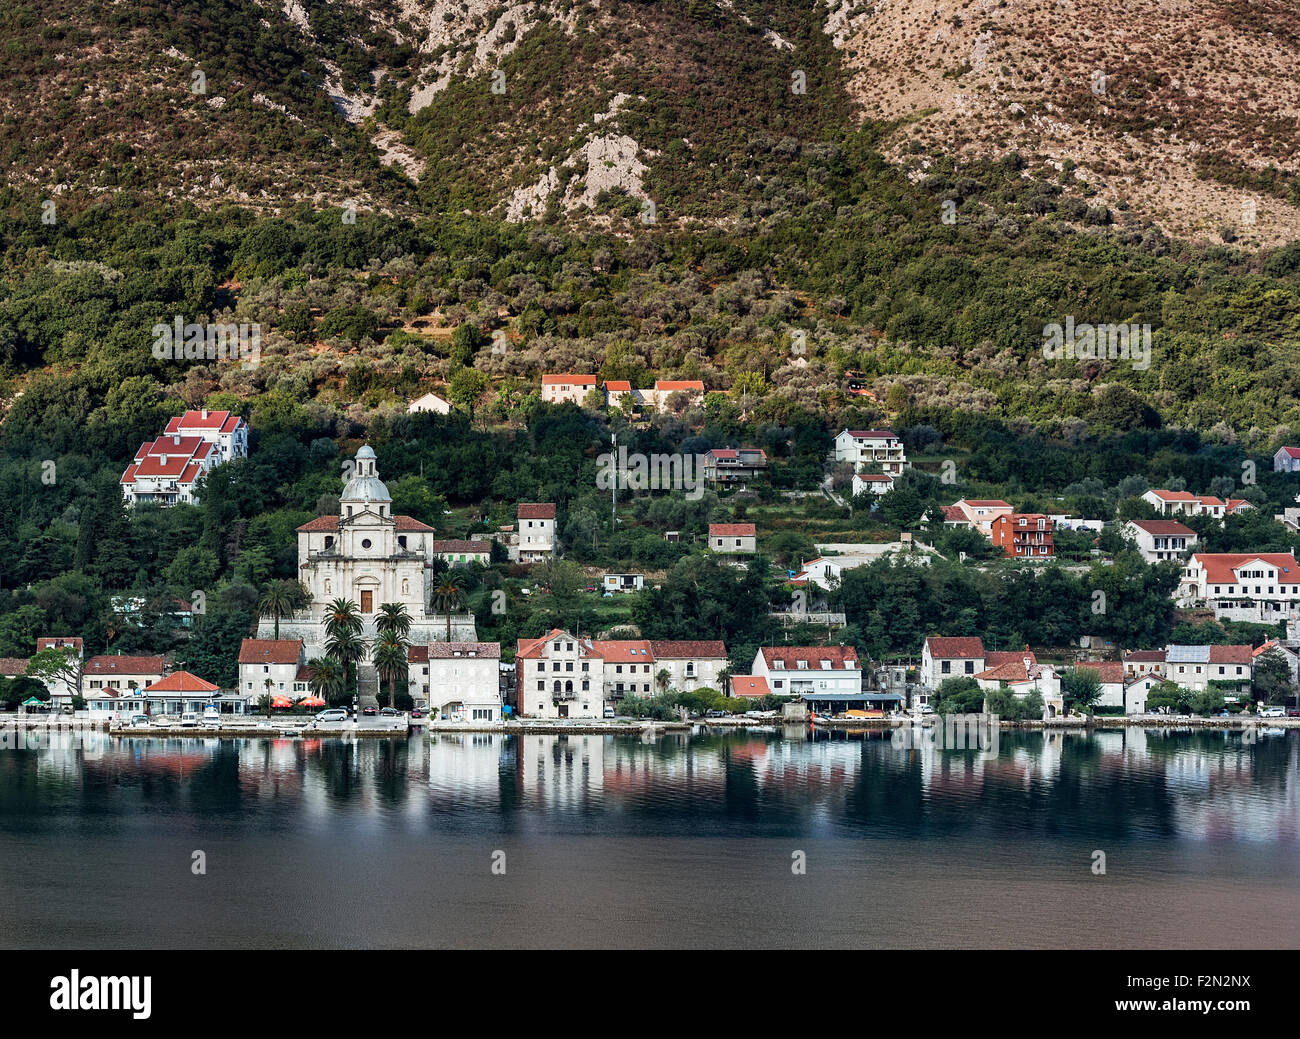 The Catholic Church of the Birth of the Virgin Mary, Prcanj, Montenegro Stock Photo